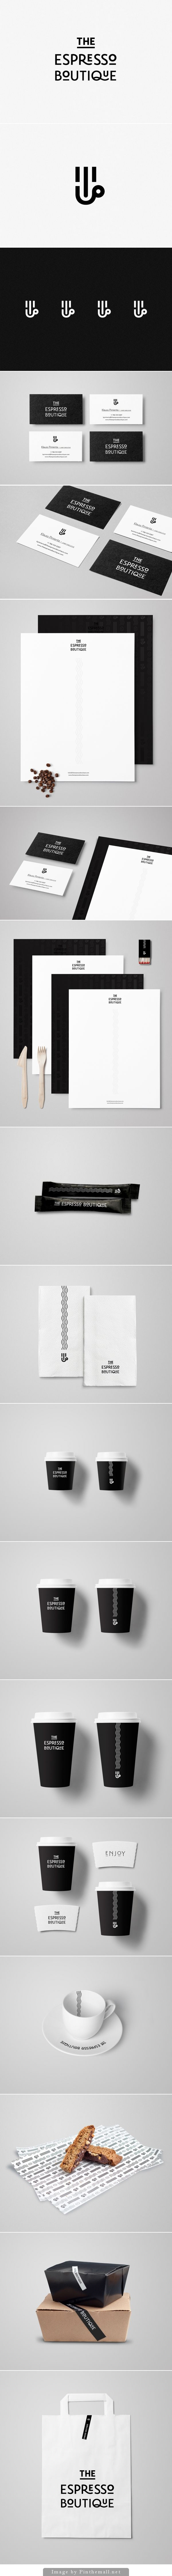 Branding stationary corporate identity business card letterhead cup bag packaging napkins logo type minimal black and white graphic design espresso coffee